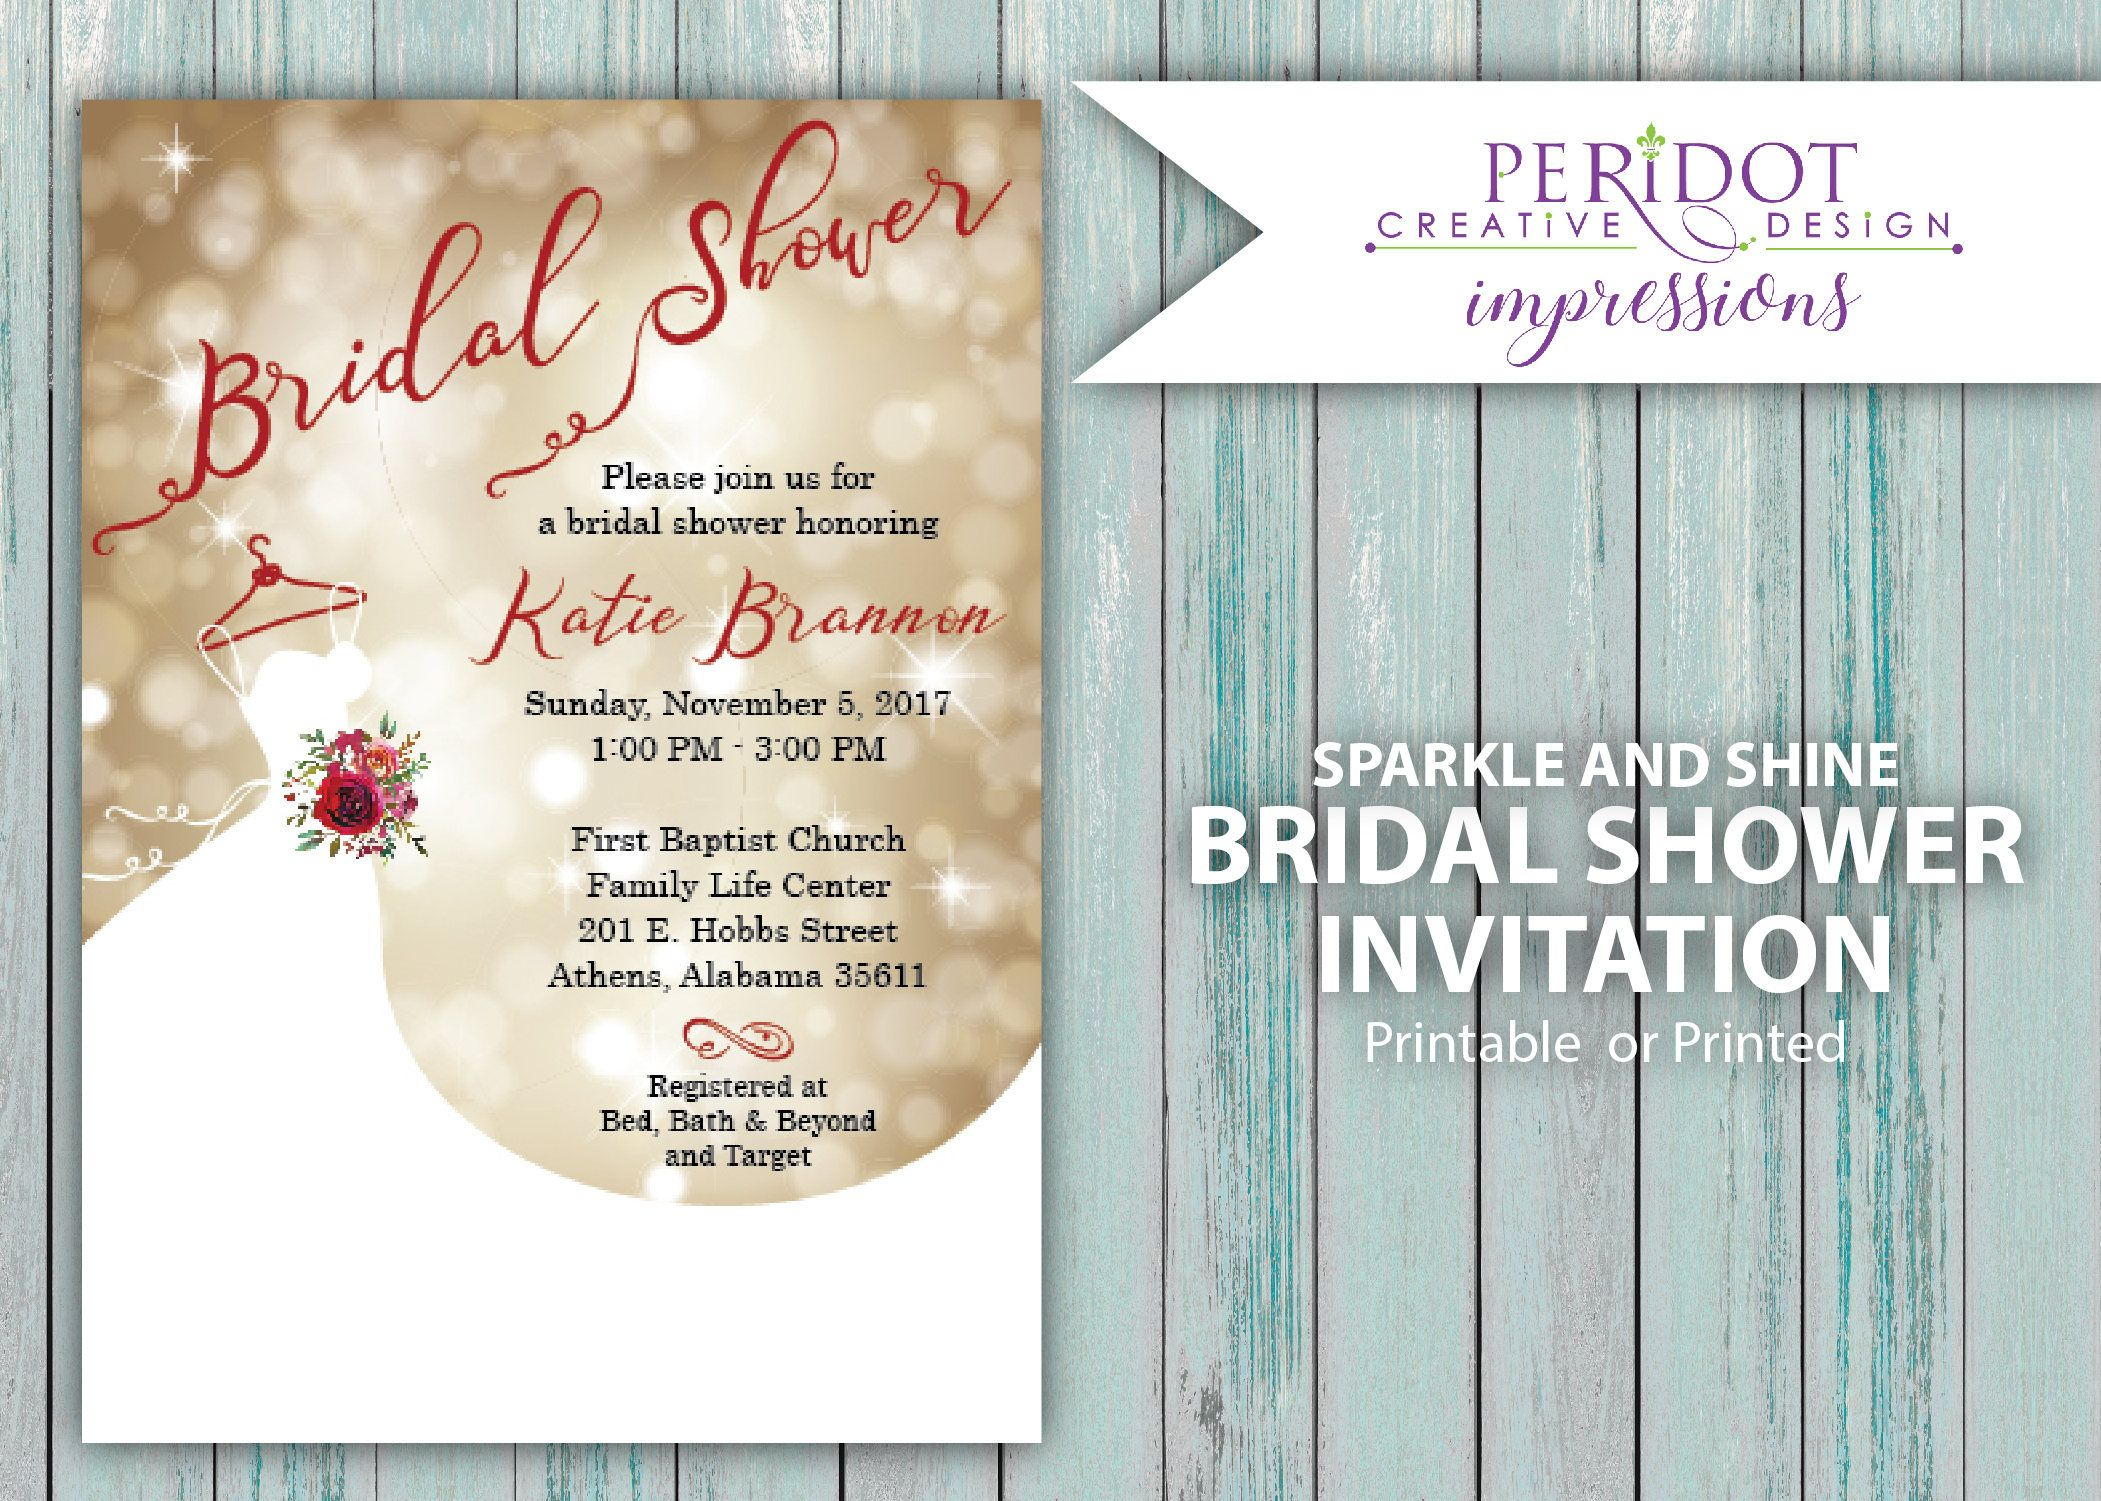 Printed Or Printable Bridal Shower Invitation Holiday Shower